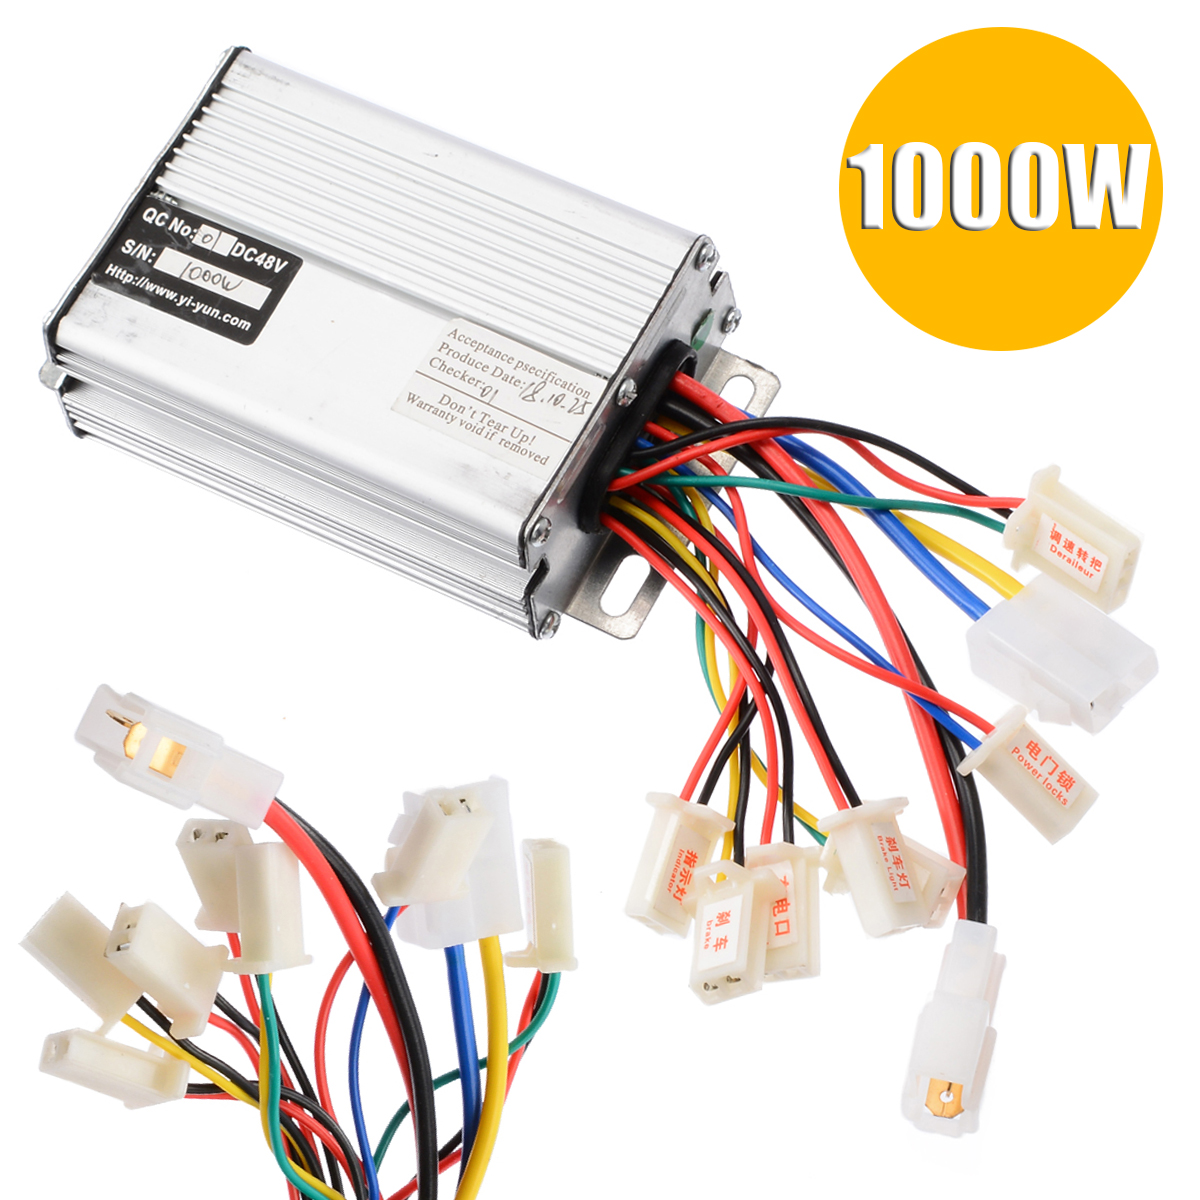 48V 1000W Brushed Controller Electric Bicycle E-bike Scooter Motor Brush Speed Controller For Vehicle Bicycle E-Bike Accessories